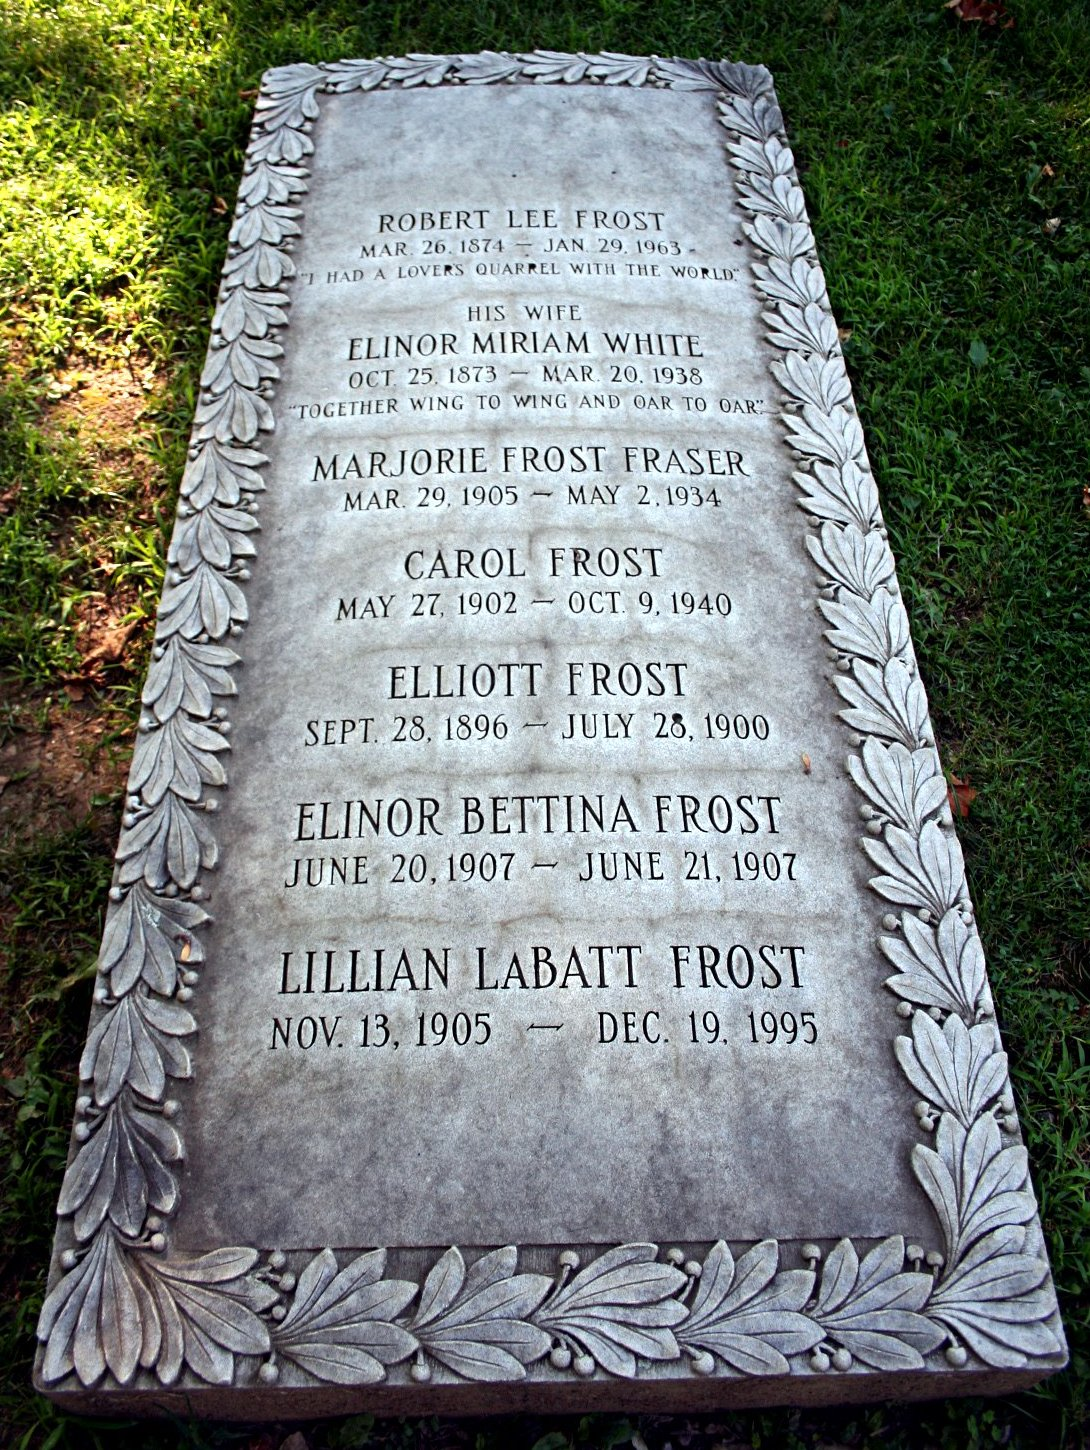 robert frost timeline of important dates he is buried at